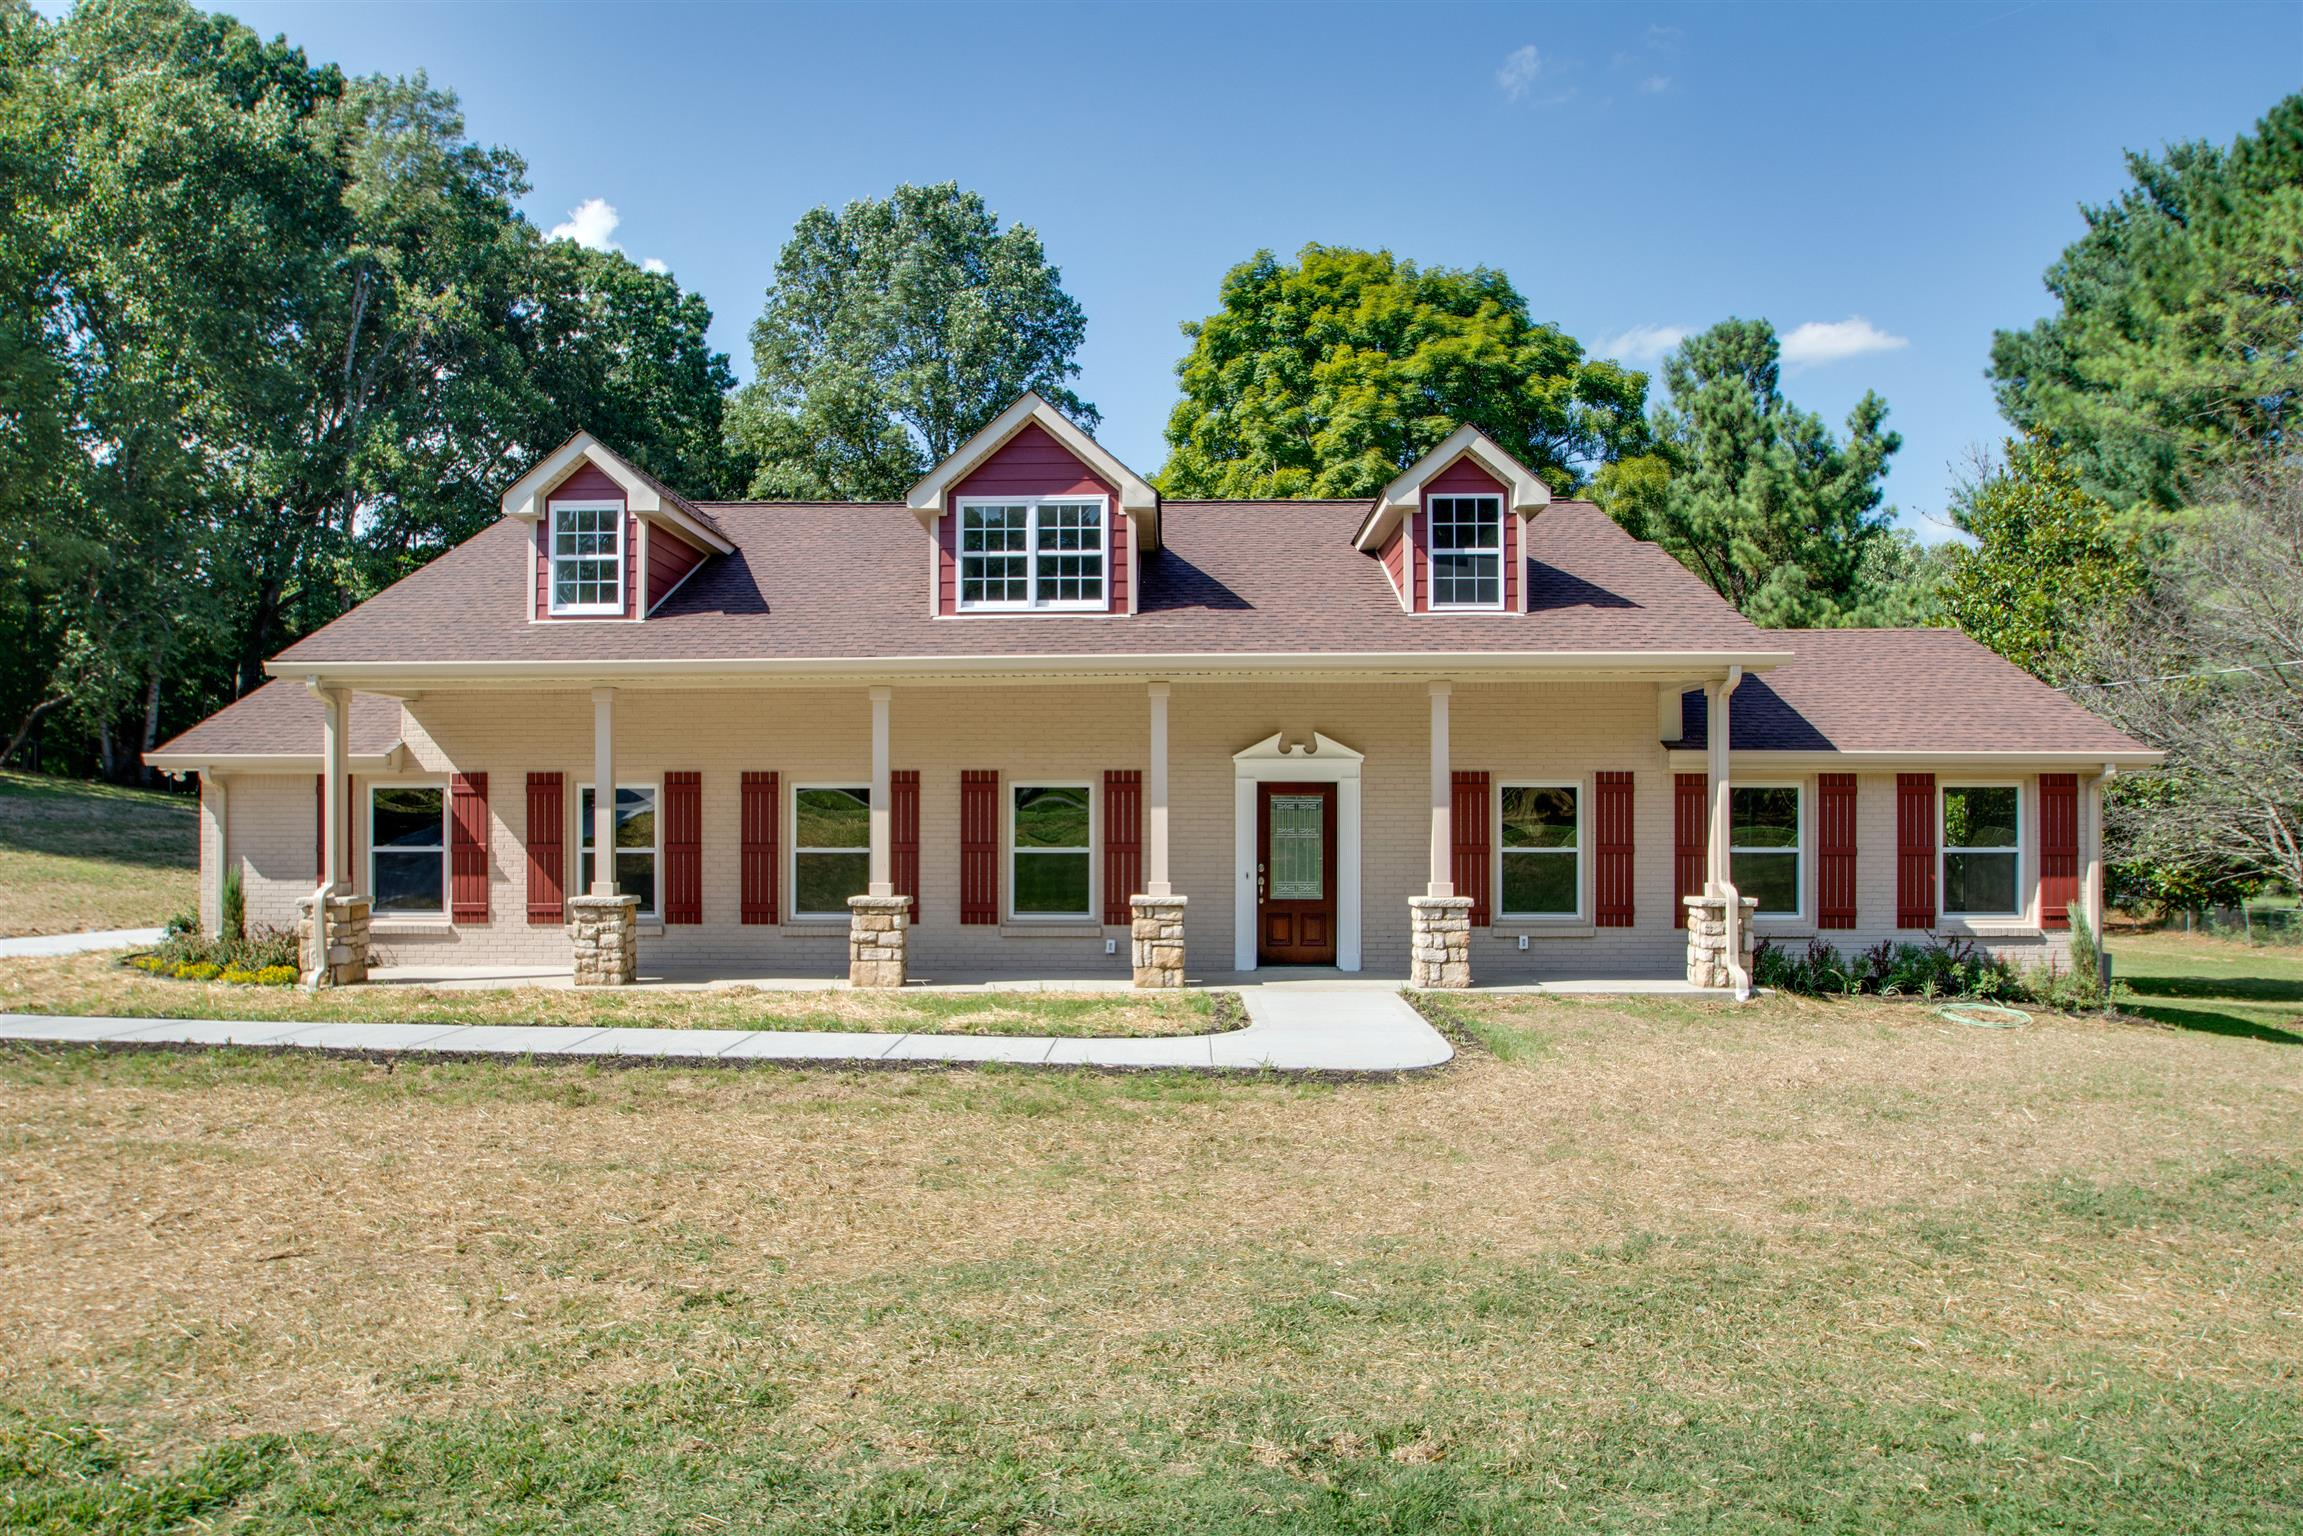 7119 Littlejohn Lane, Fairview in Williamson County County, TN 37062 Home for Sale